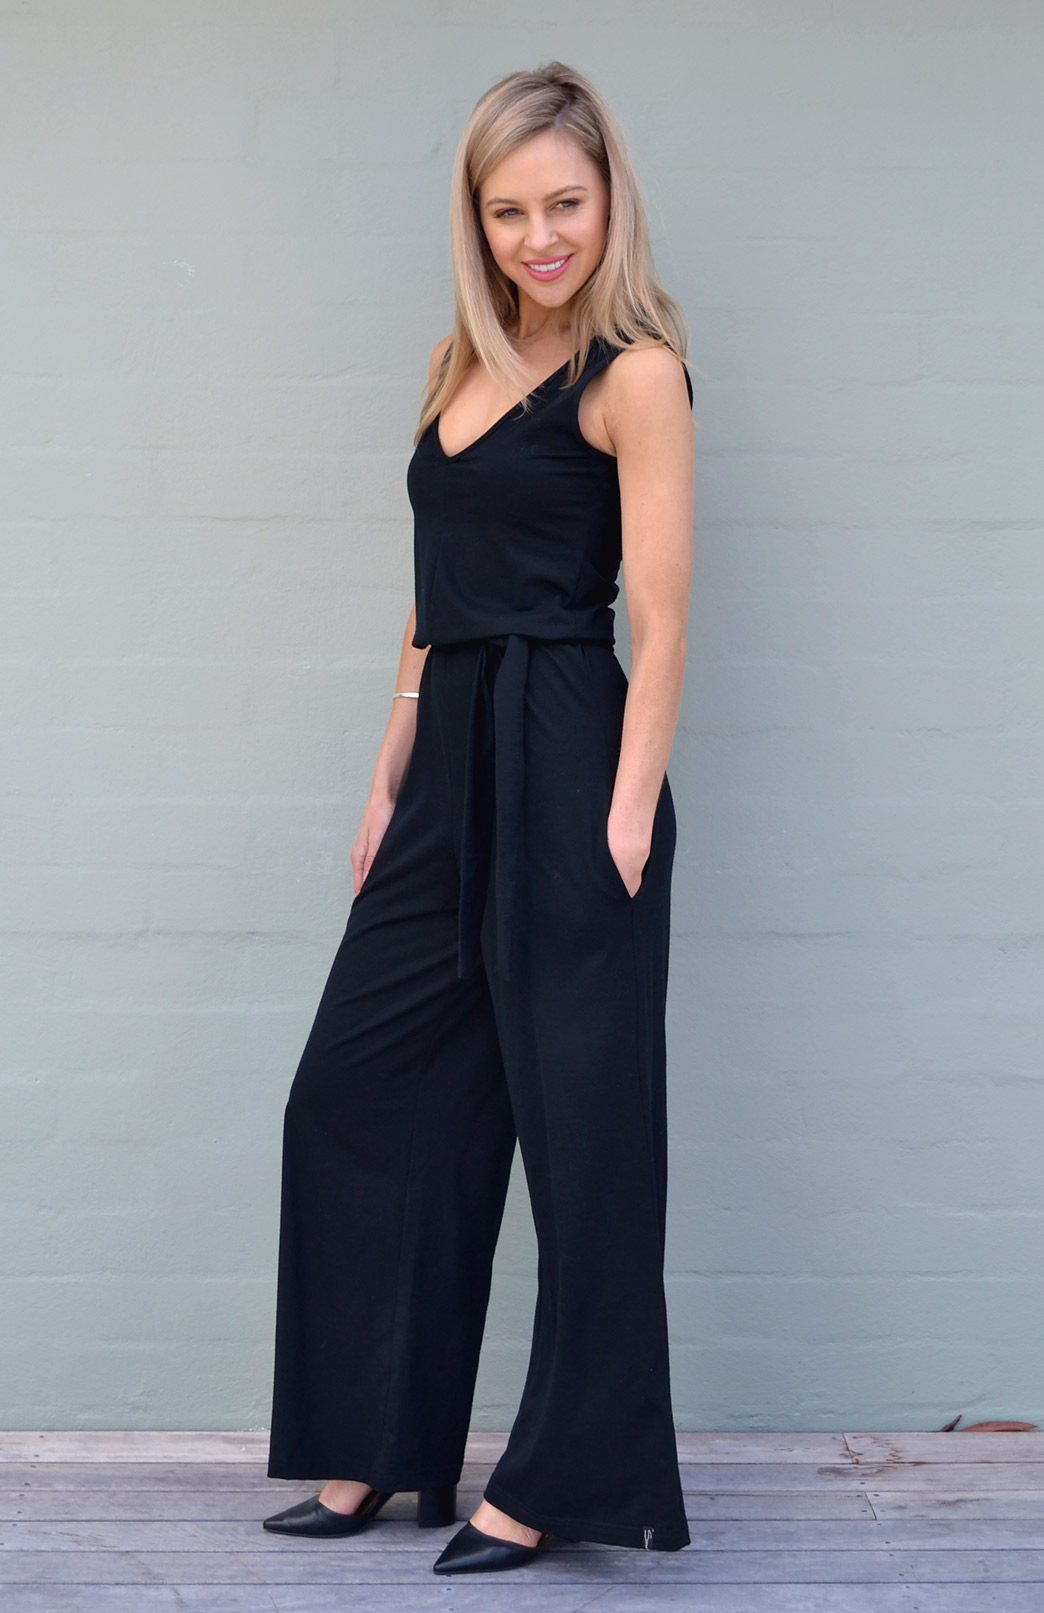 Victoria Jumpsuit - Women's Black Merino Wool Jumpsuit with V-Neck Line, Wide Legs and Waist Tie - Smitten Merino Tasmania Australia